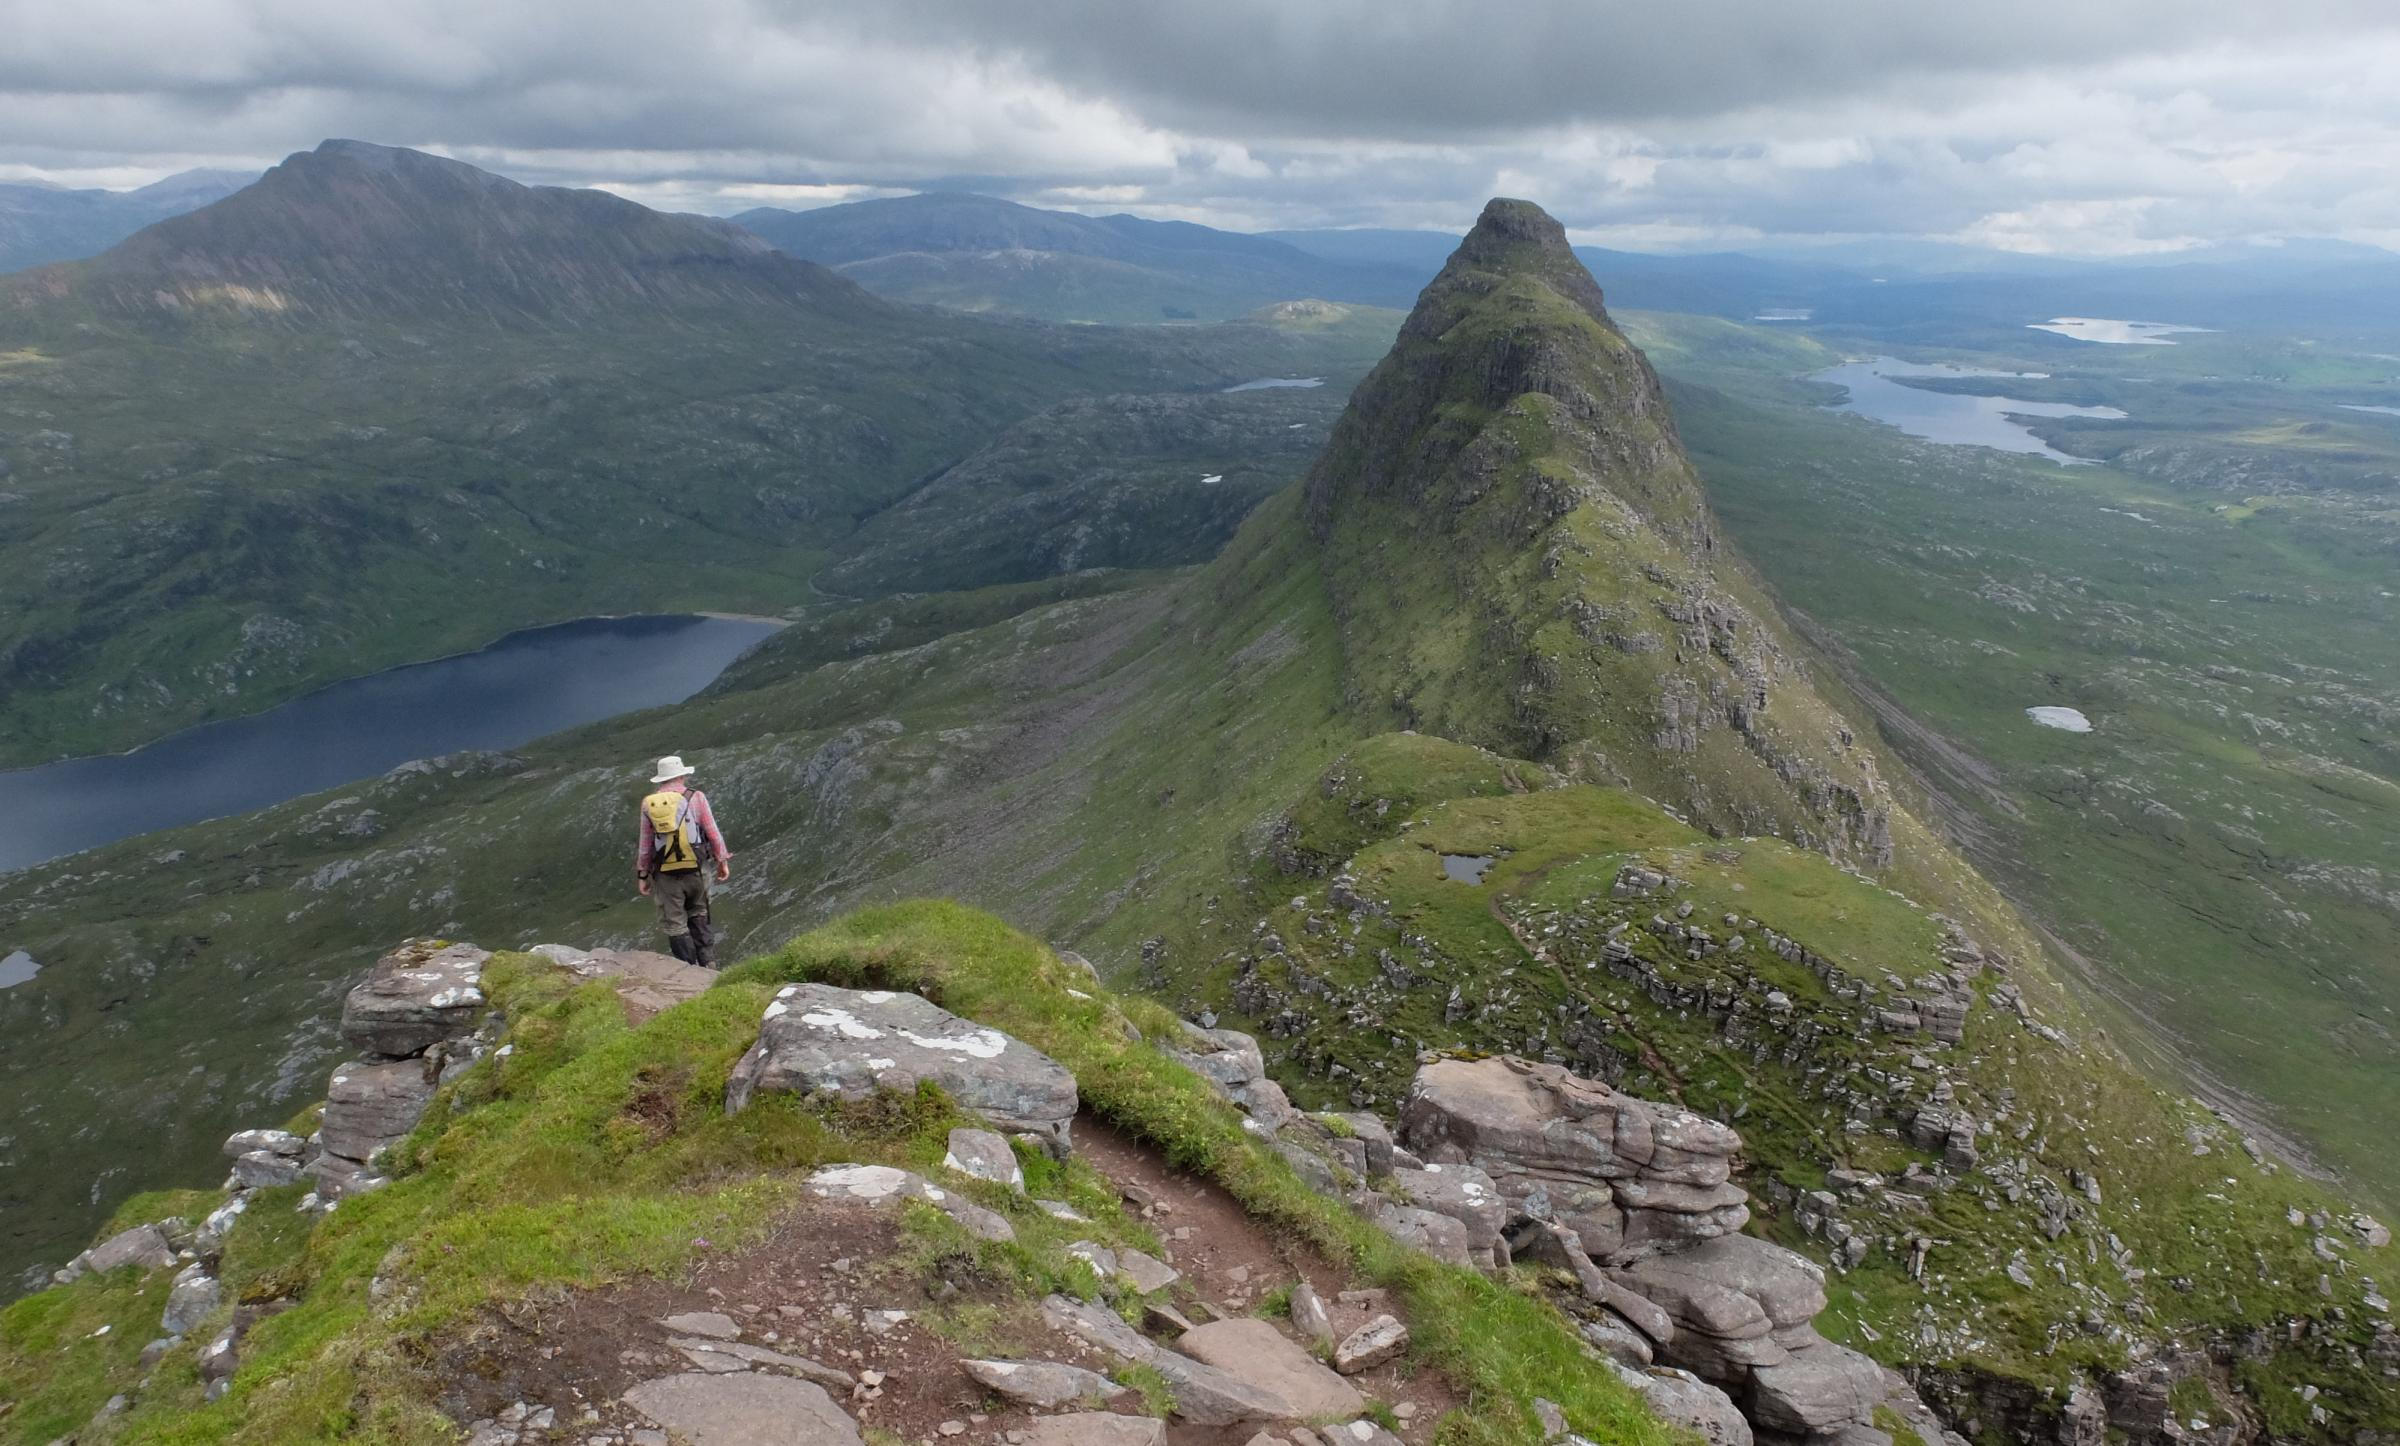 Paul Murton on Suilven in Grand Tours of Scotland's Lochs